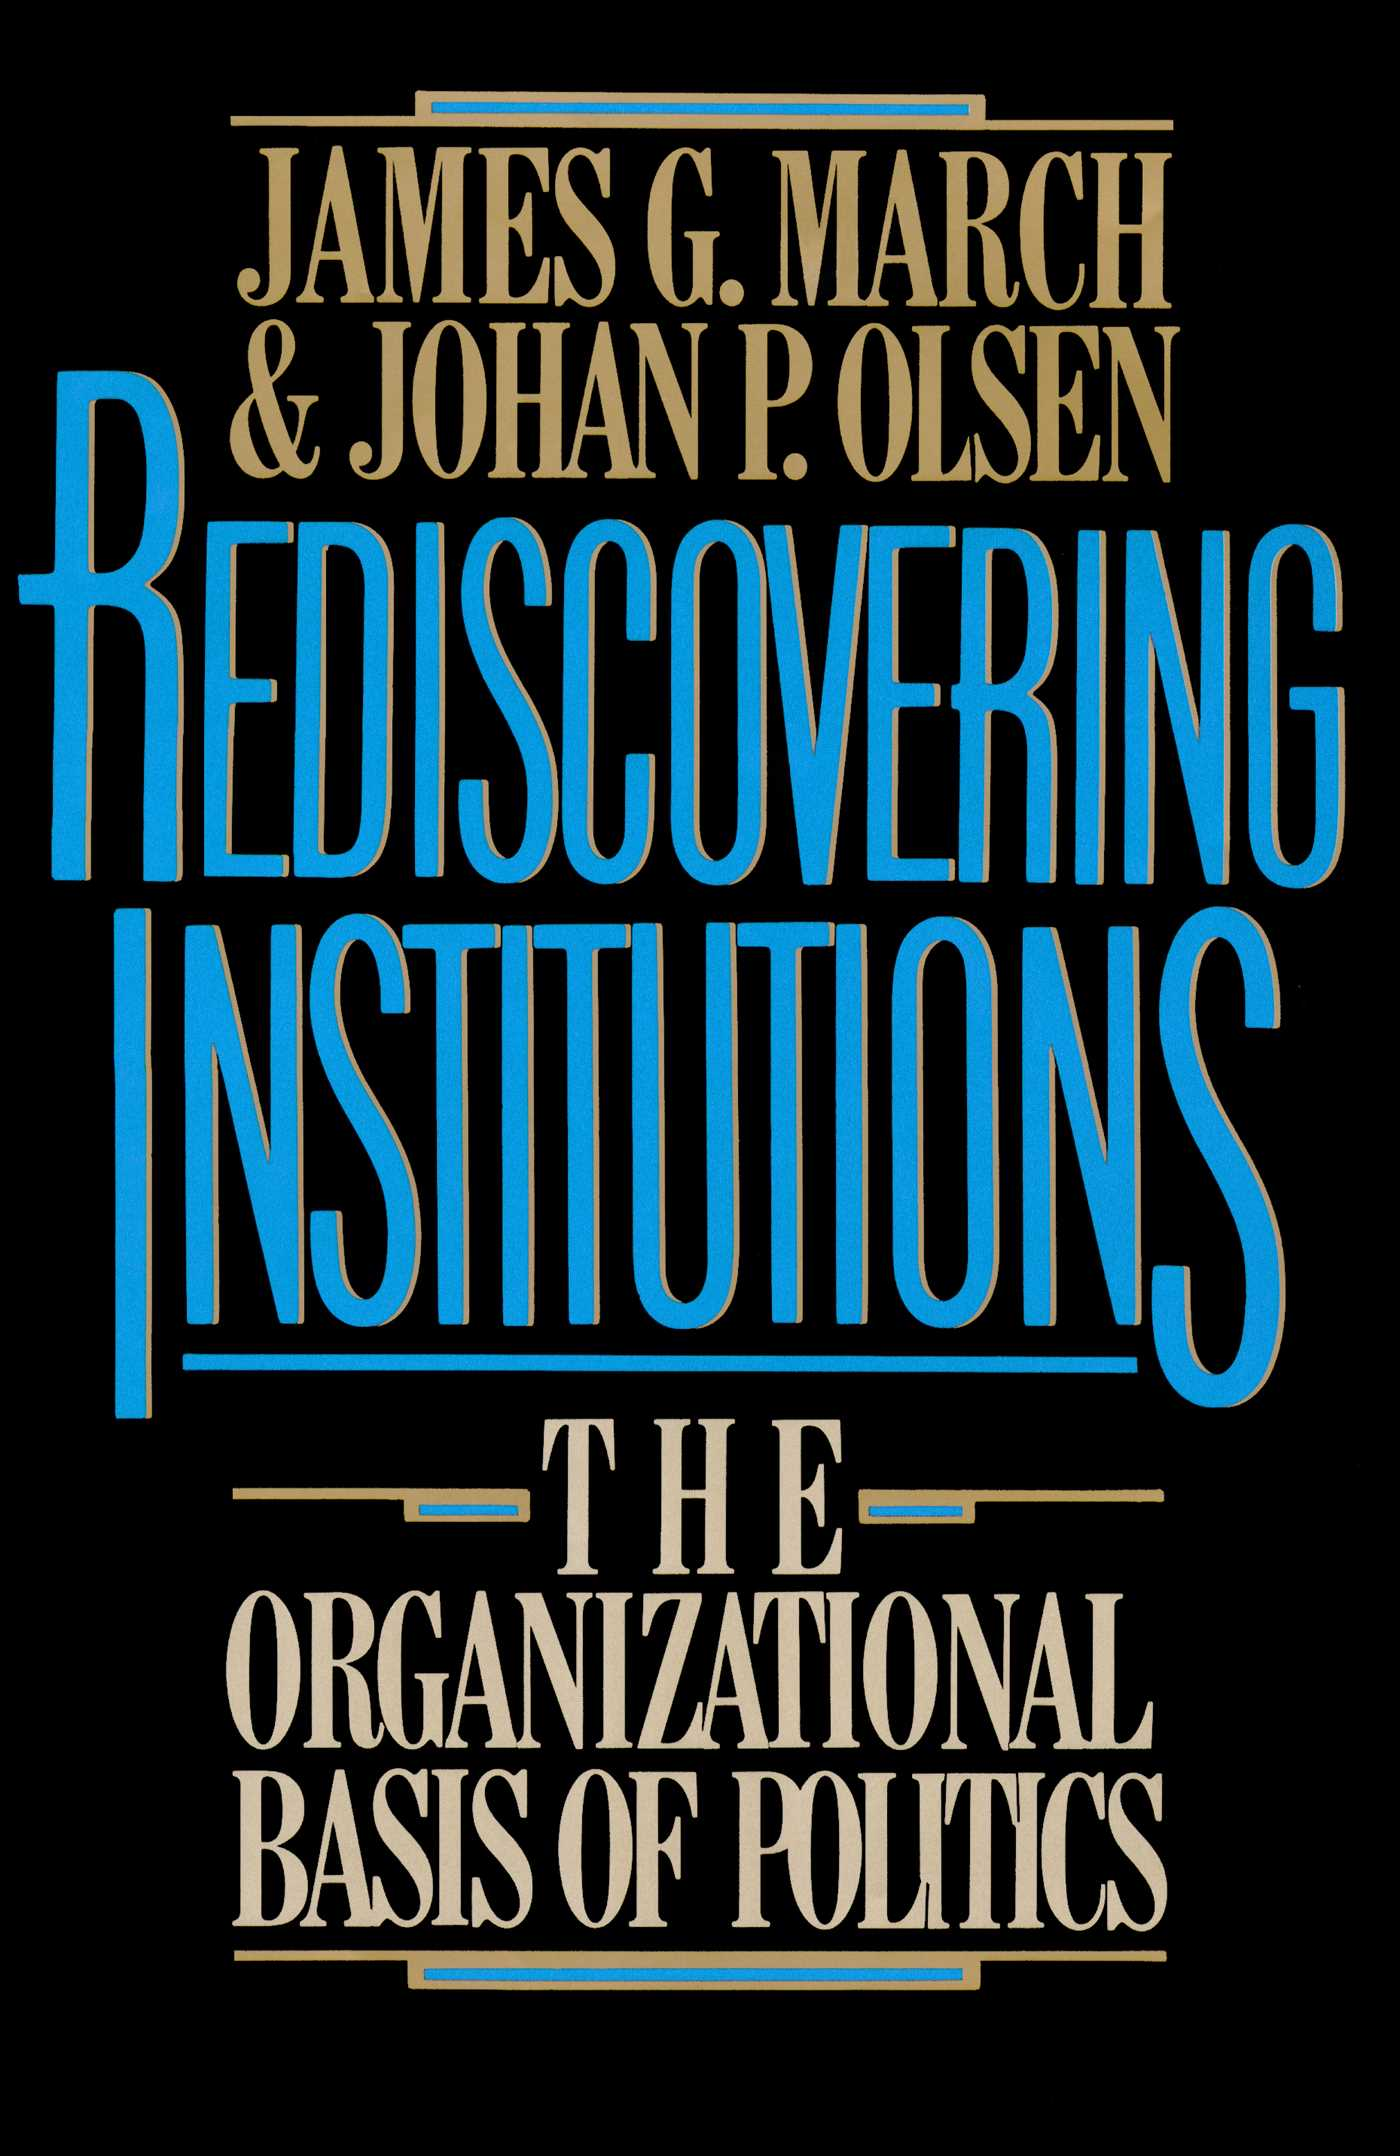 Rediscovering institutions 9781451602401 hr